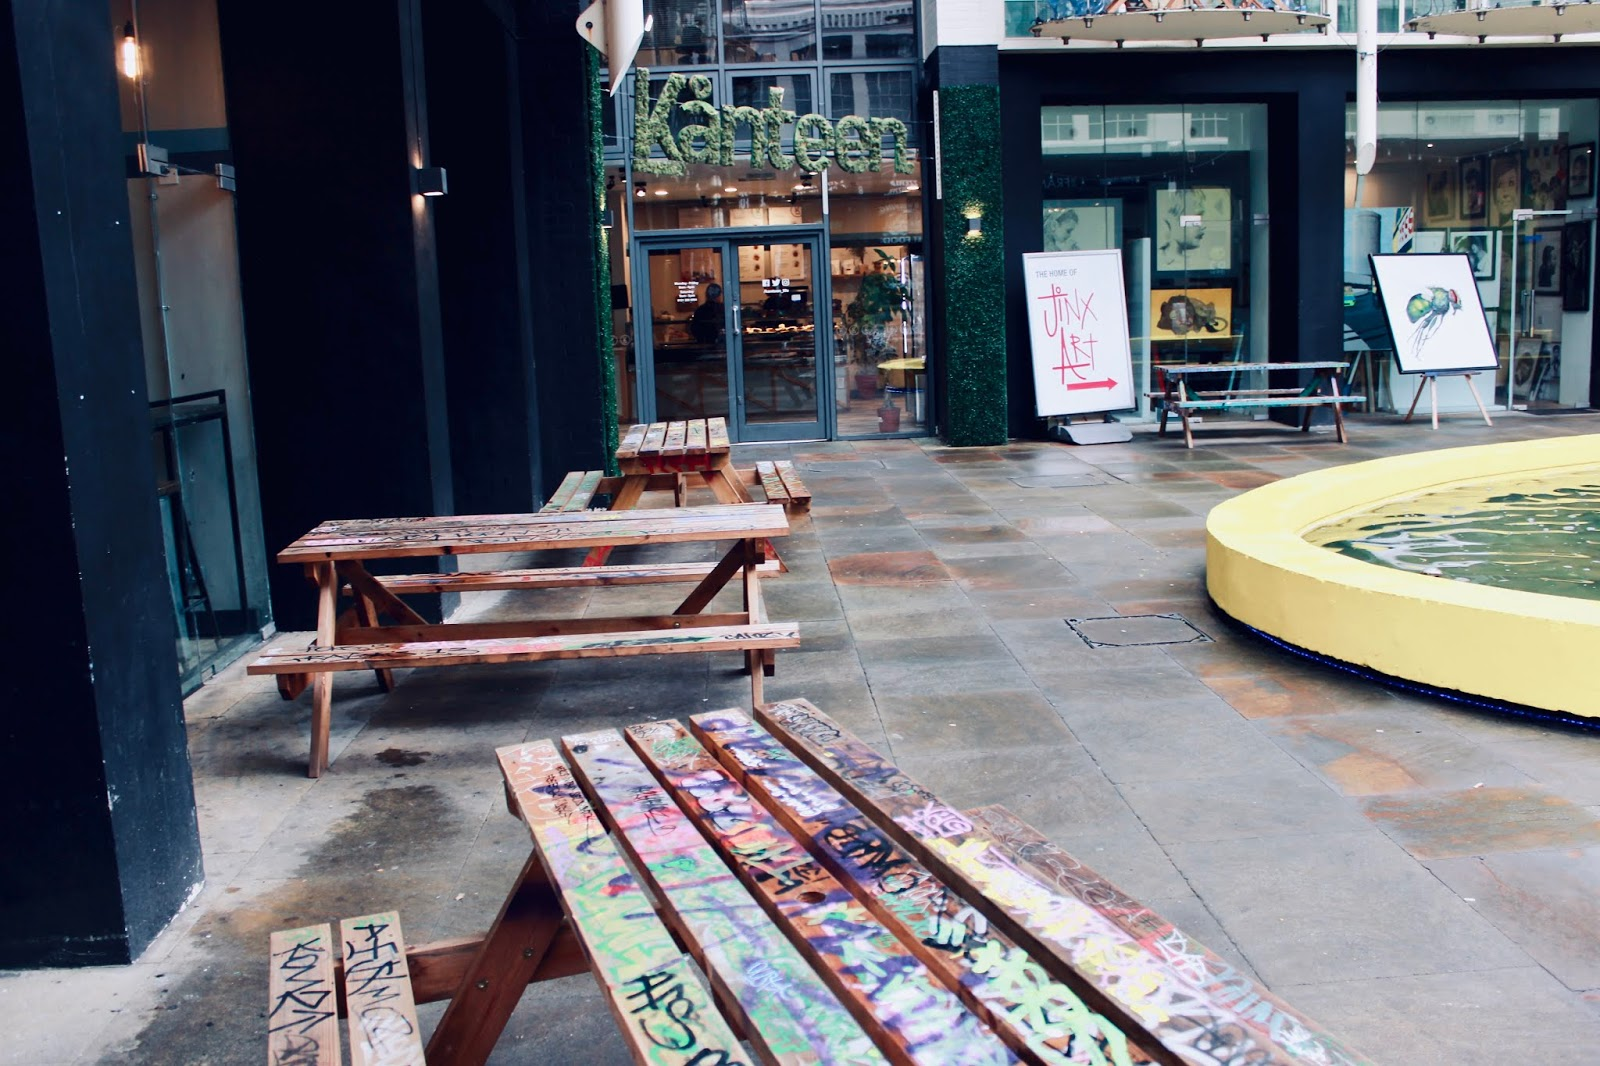 An image of some benches with graffiti on